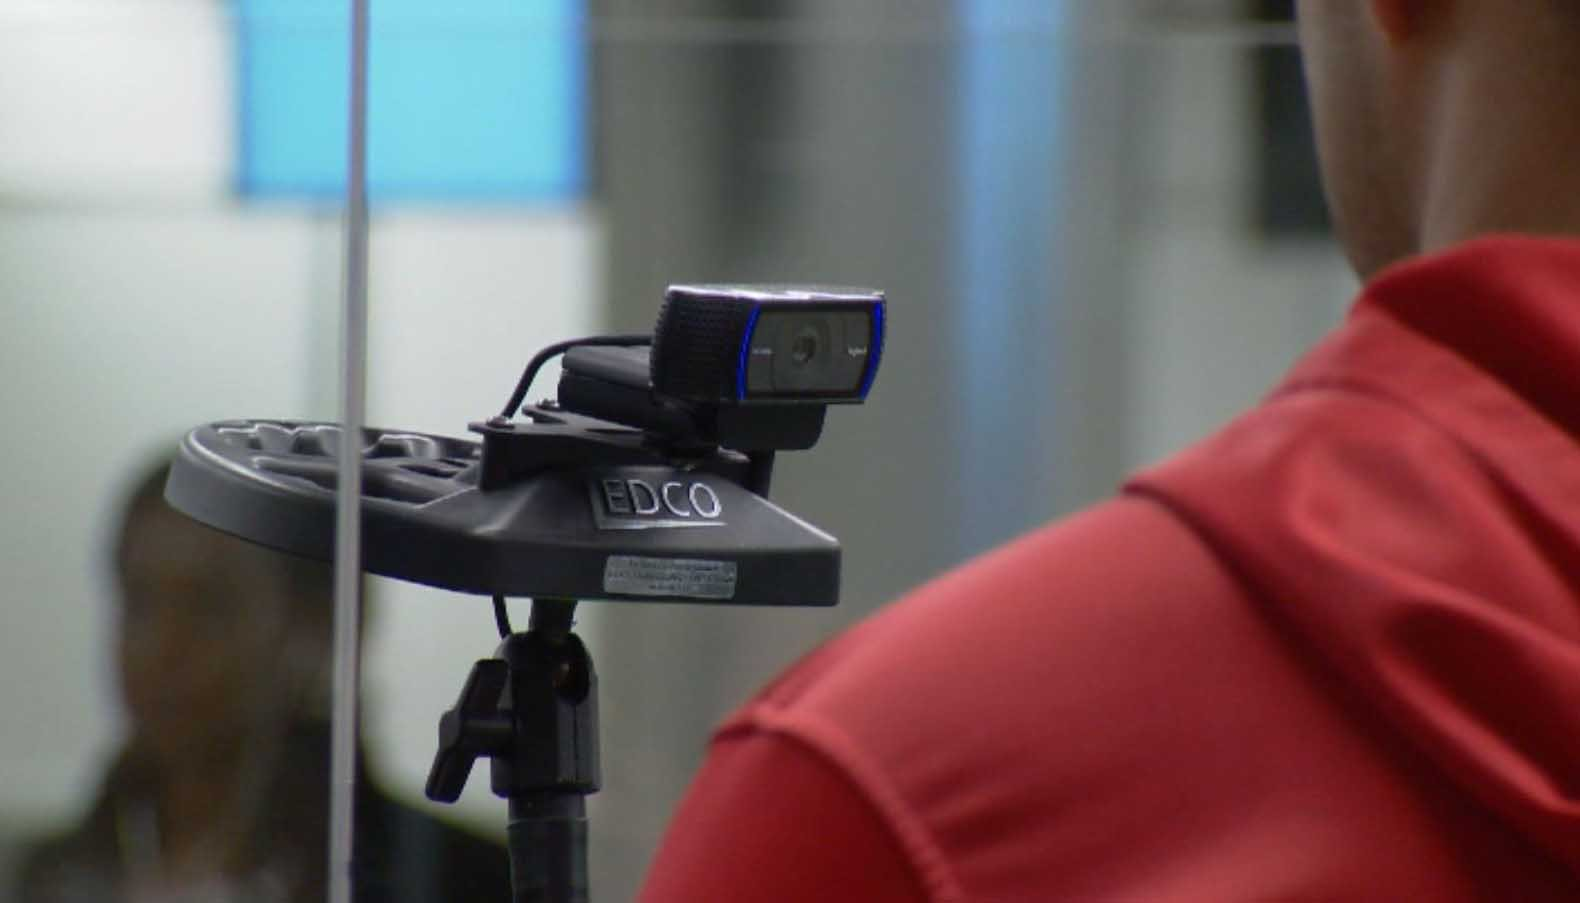 Orlando International Airport has become the first airport in the country to use facial recognition technology to process international travelers. (Source: WESH via CNN)